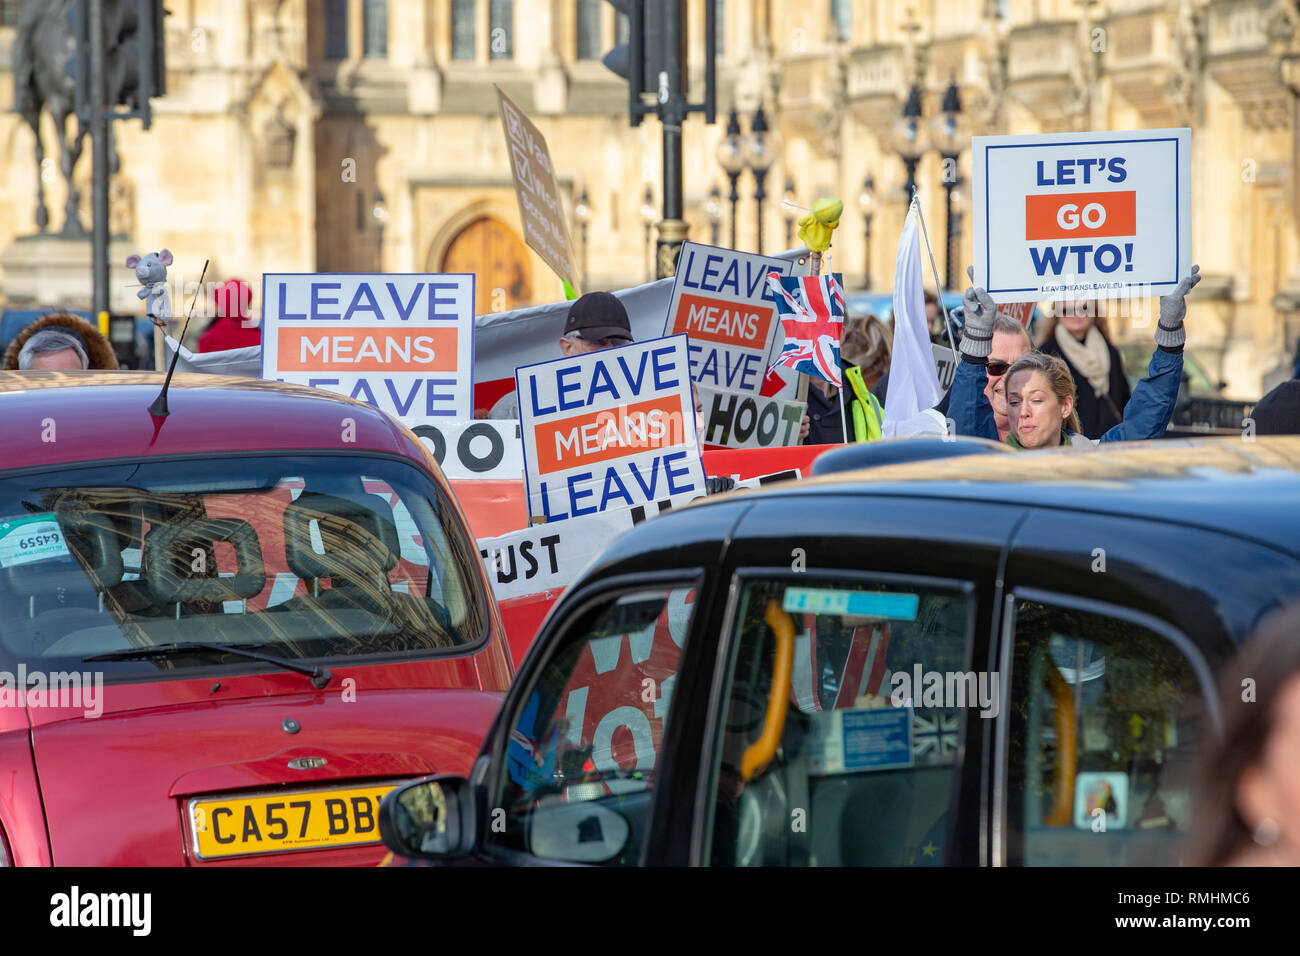 Vote leave supporters demonstrate outside Parliament. They want to leave the EU on March 29th. - Stock Image